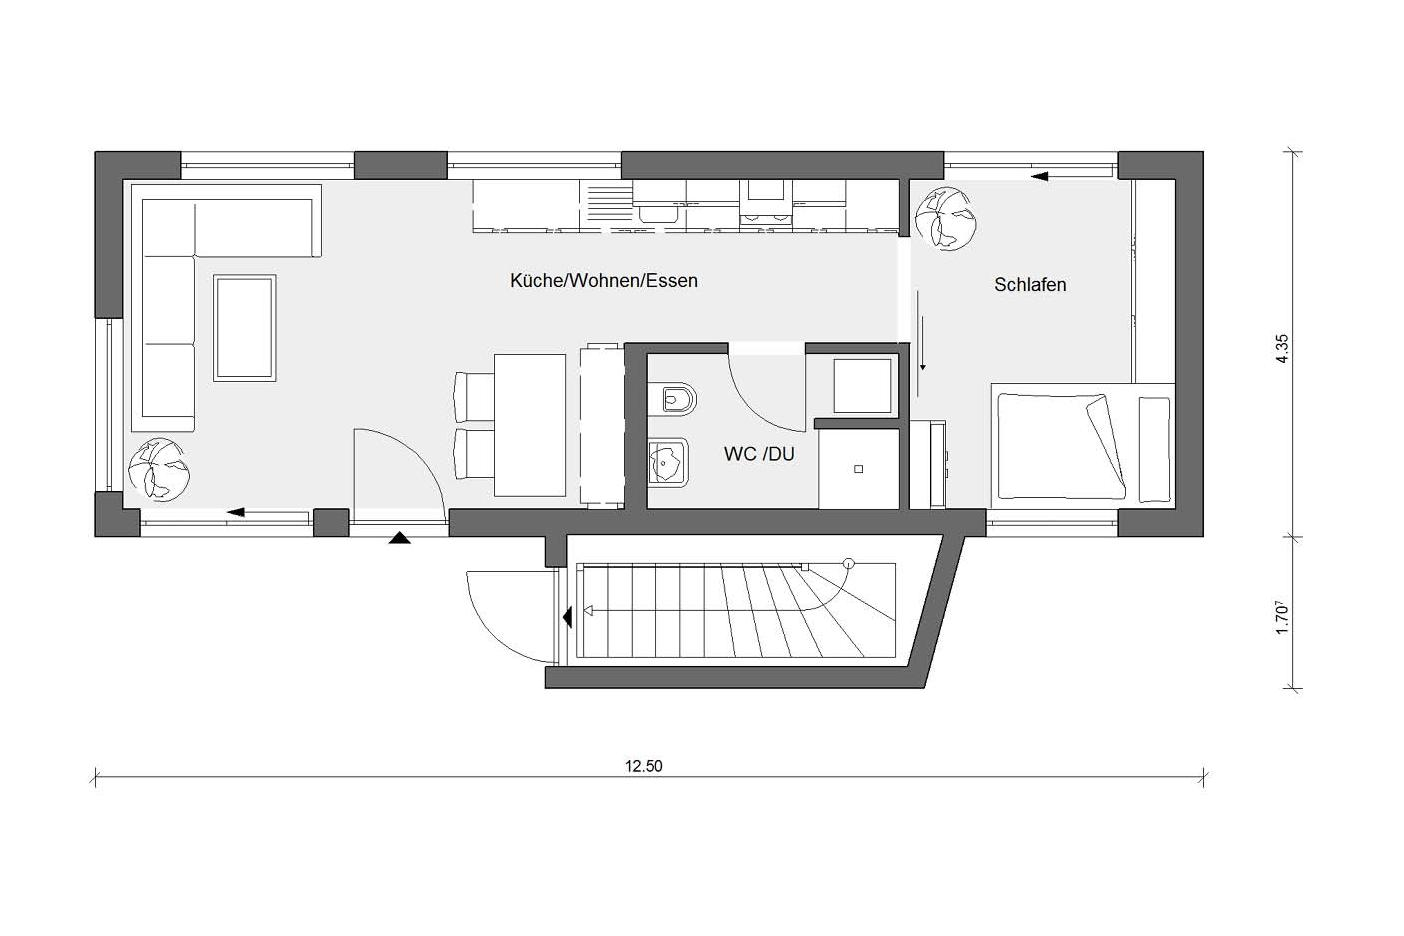 Floor plan modular house bungalow F 10-043.7